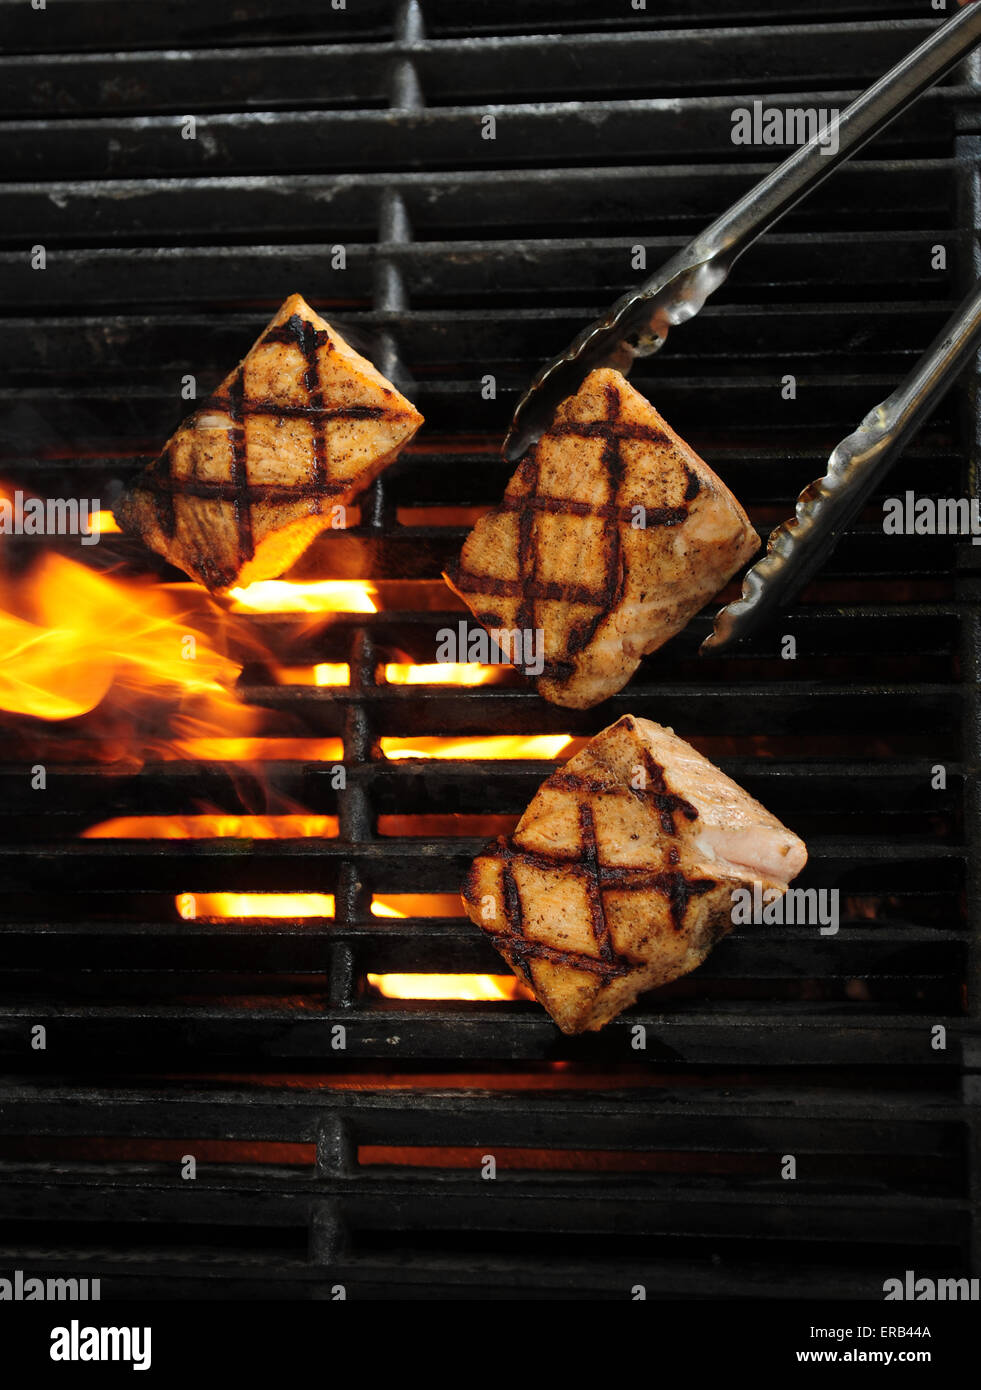 Metal tongs gripping pieces of salmon fish being grilled with an open flame - Stock Image